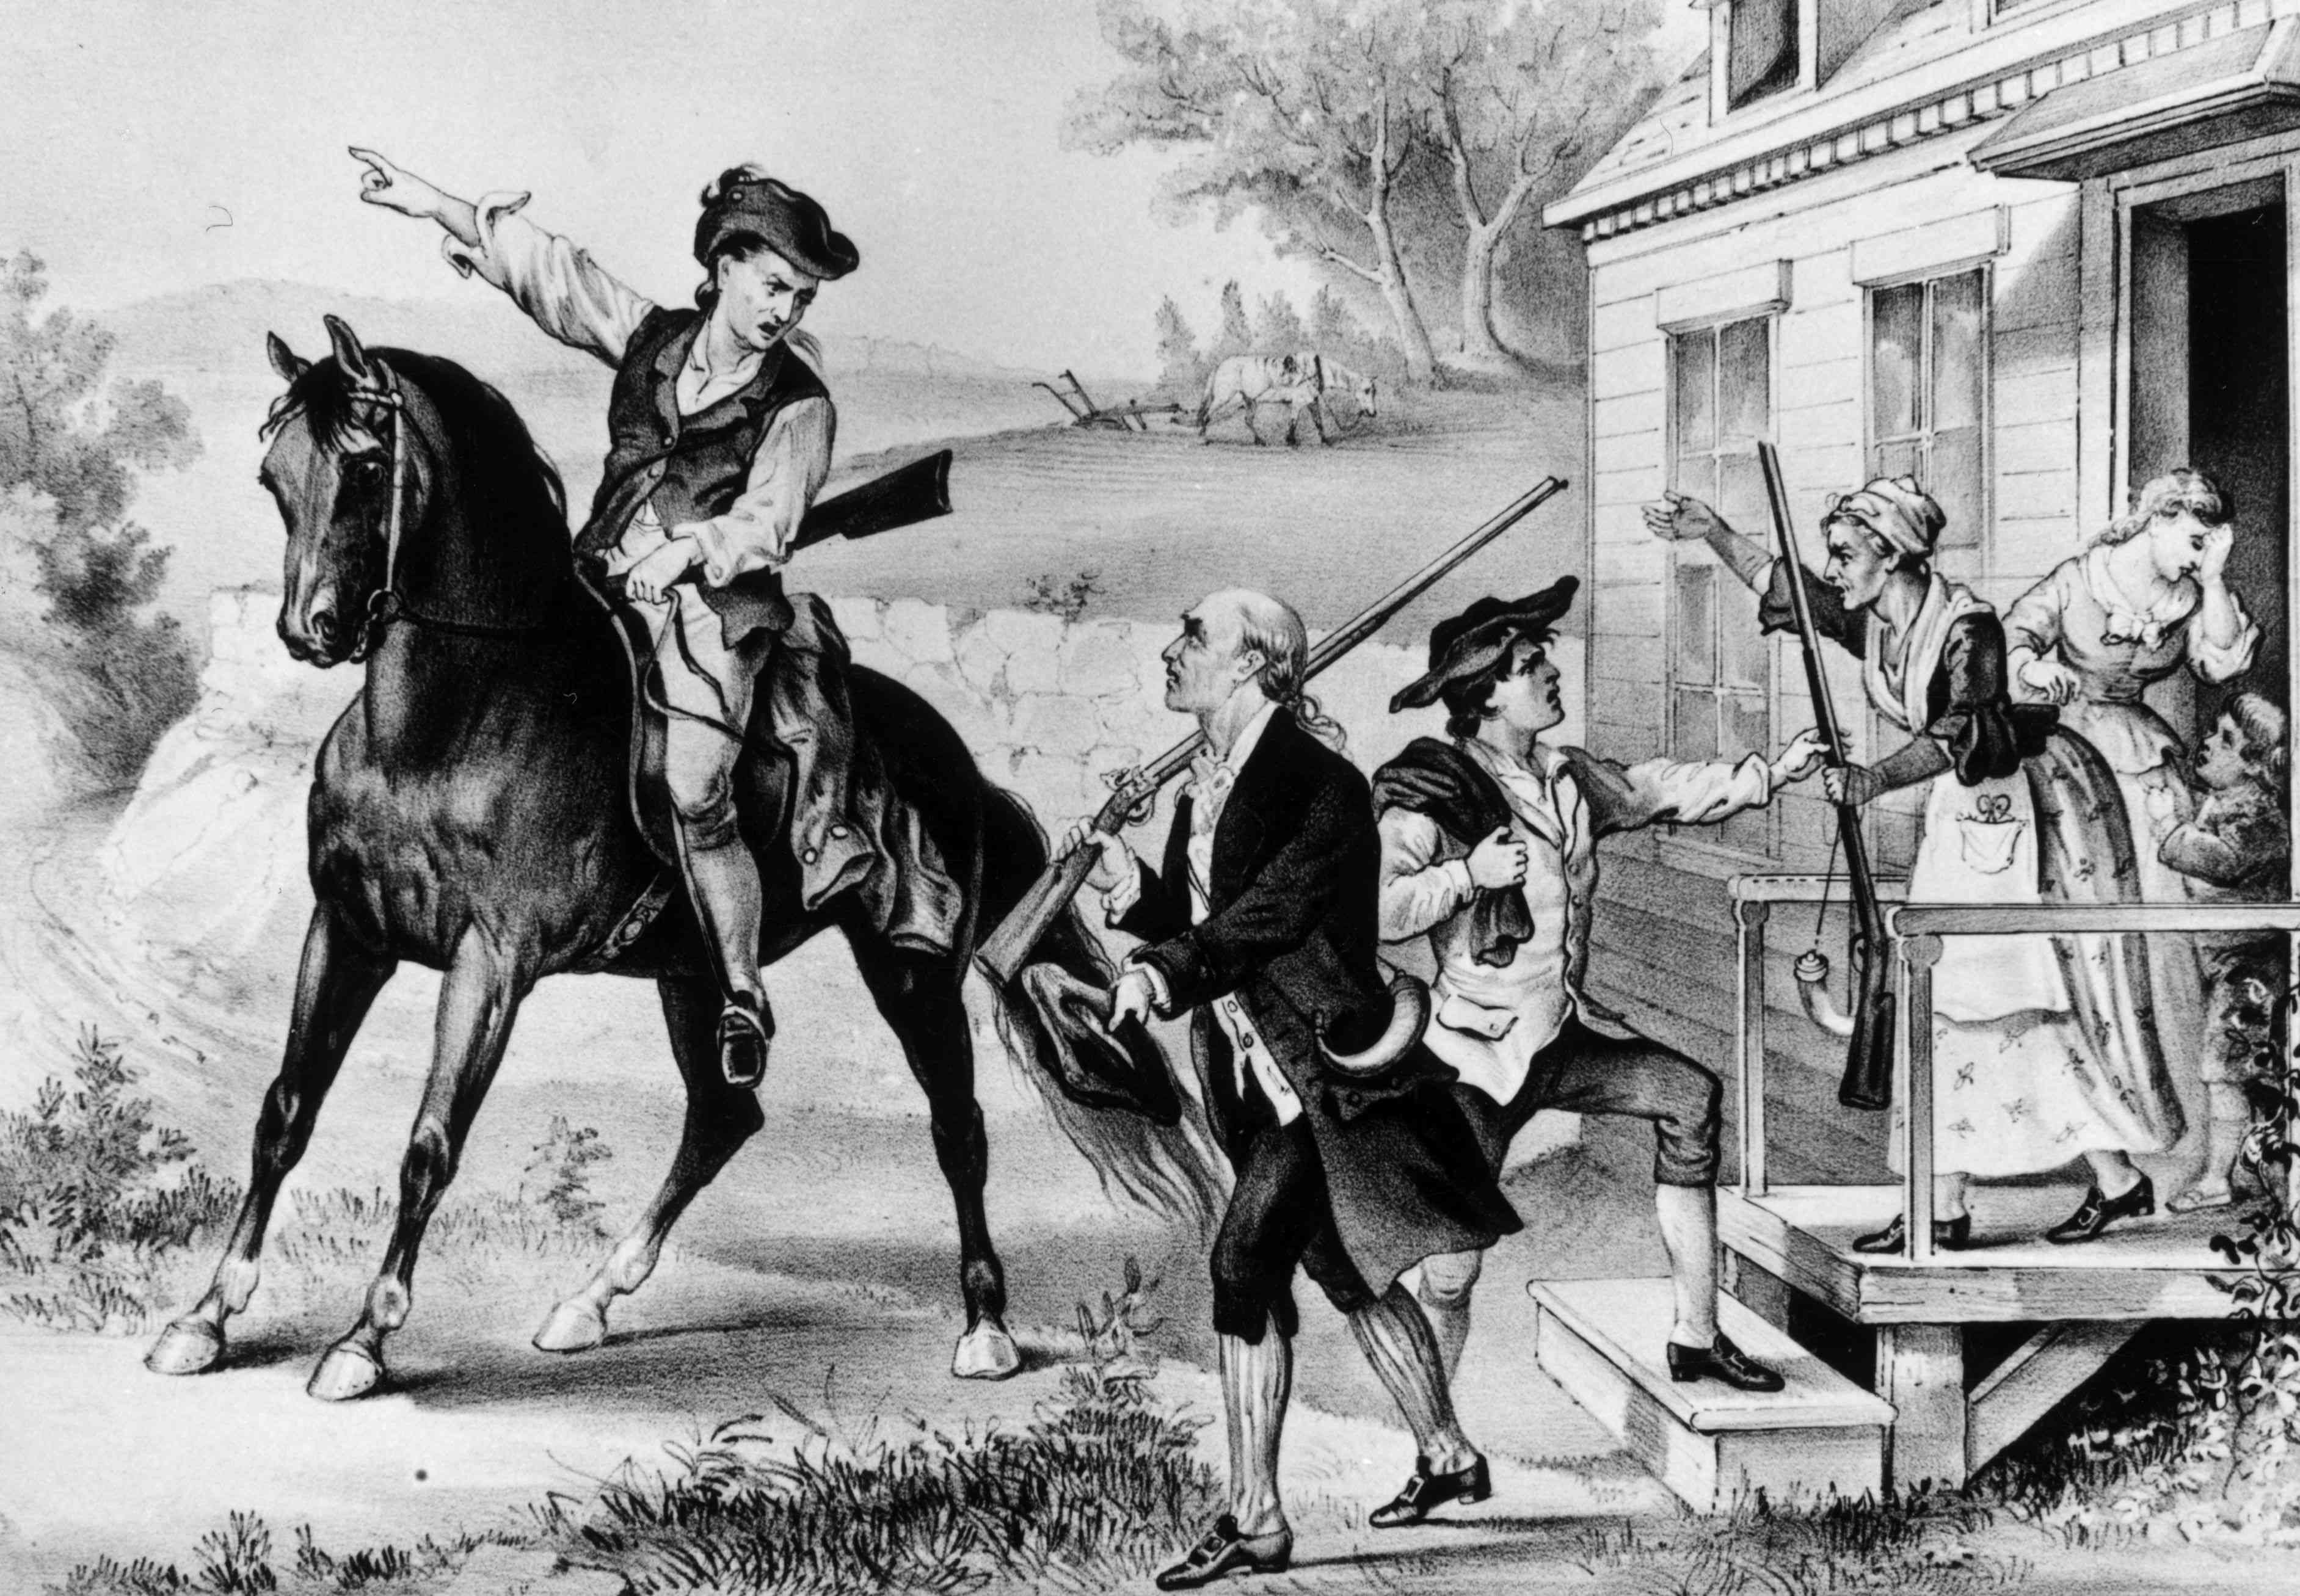 1774: A gathering of minutemen - colonial militia of New England who were ready to fight the British at a moment's notice.